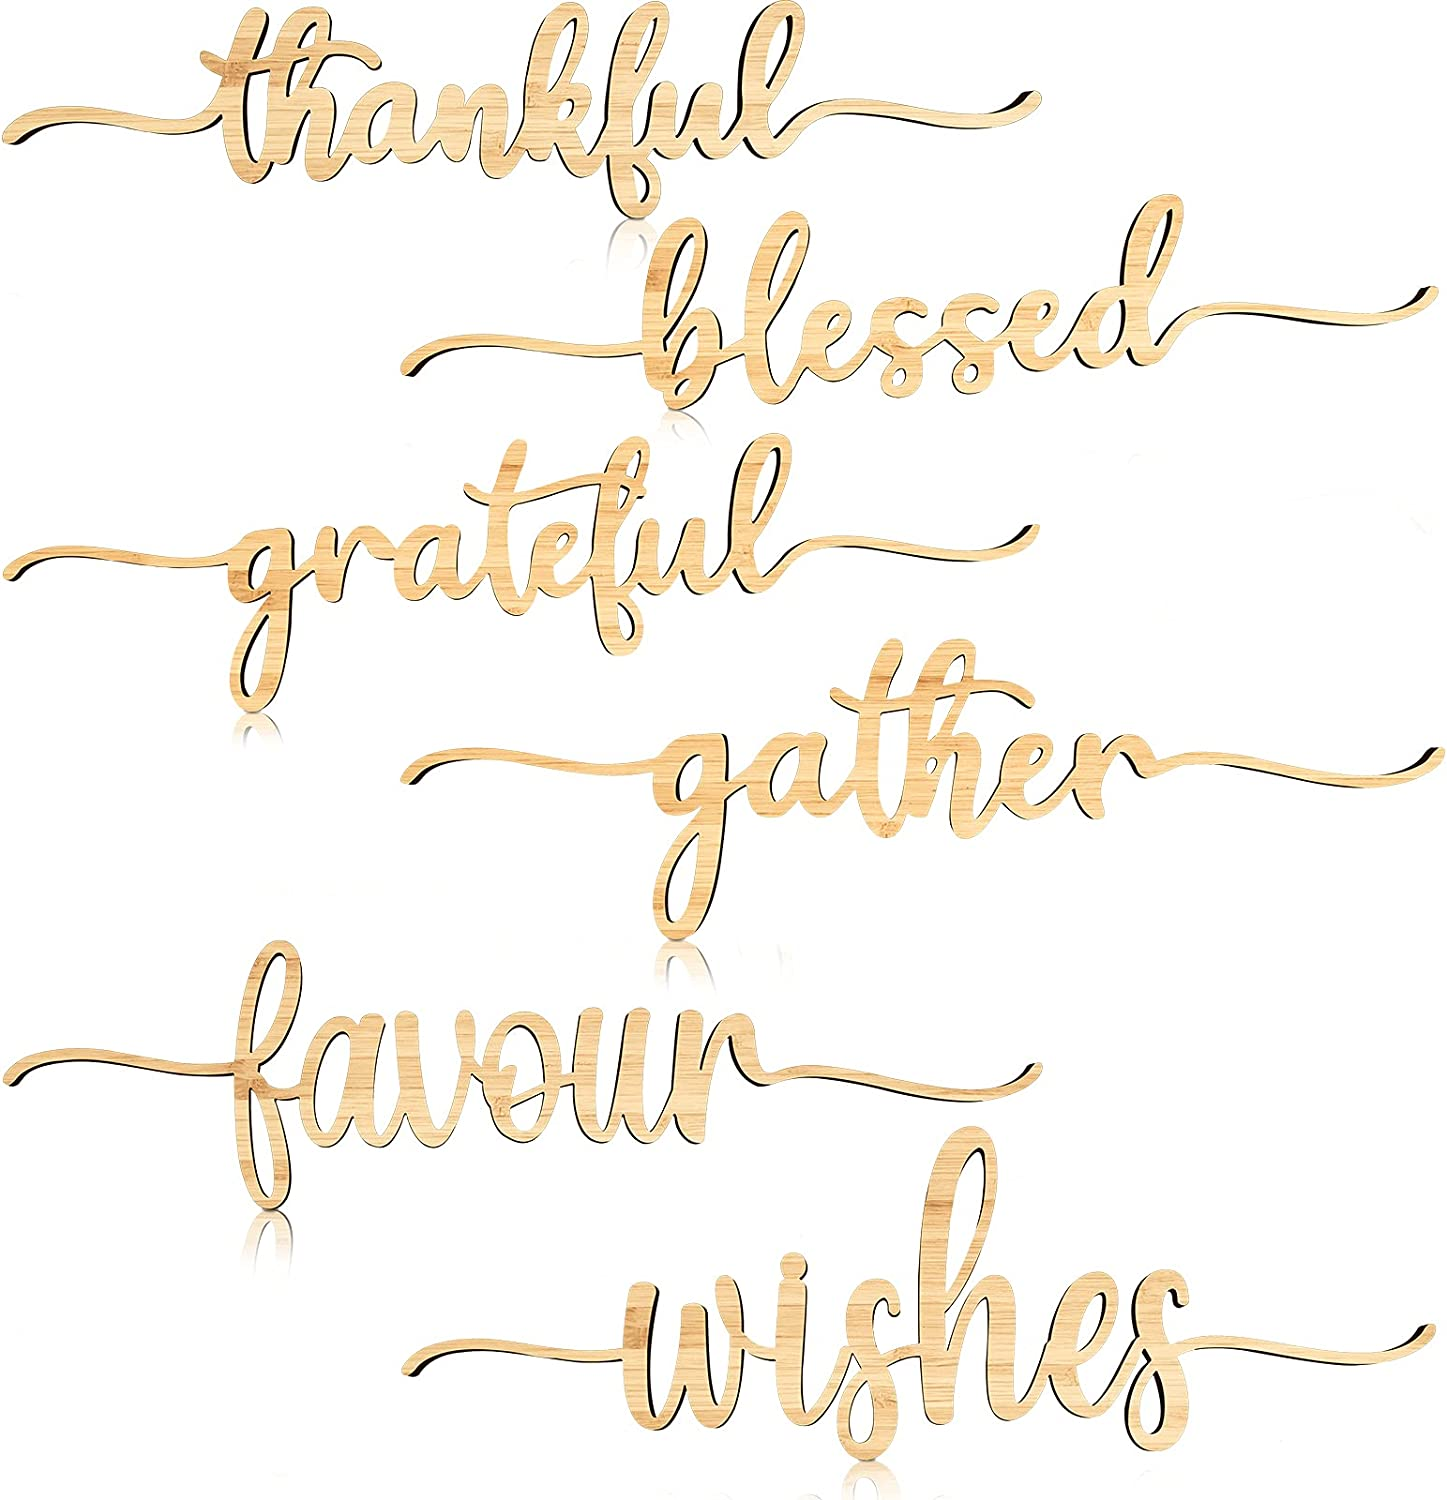 Thanksgiving Cutout Wood Sign Thankful Grateful Blessed Word Sign Rustic Thankful Signs Thankful Place Cards Small Gather Sign for Home Table Decoration, 6 Styles (12 Pieces)